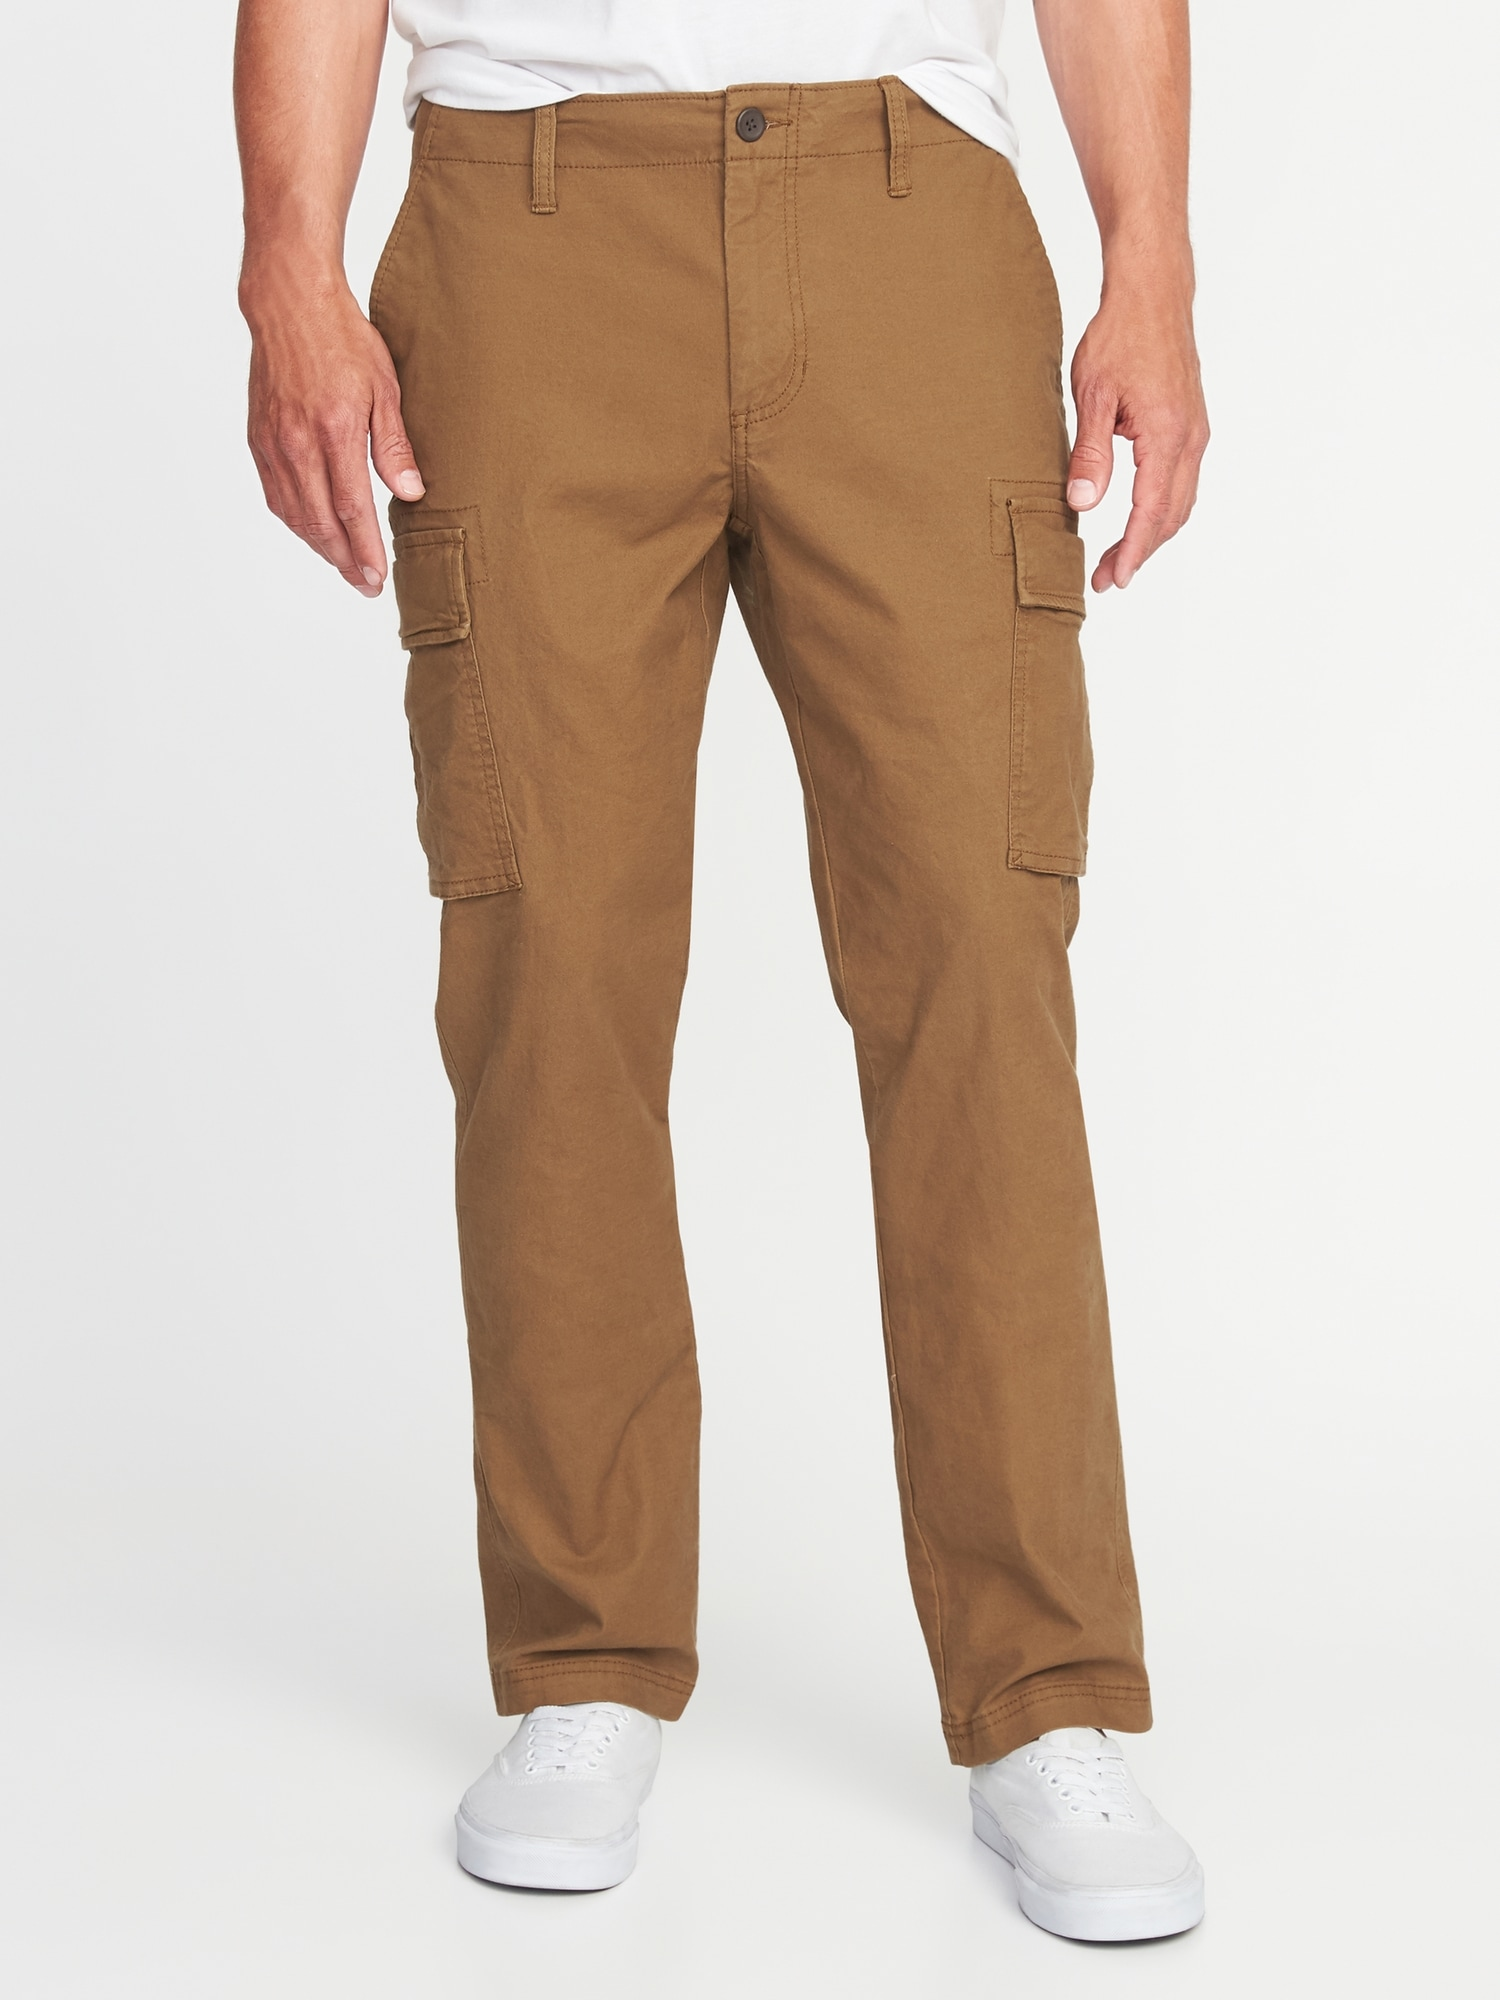 c37ae0689a9d5 Straight Lived-In Built-In Flex Cargos for Men